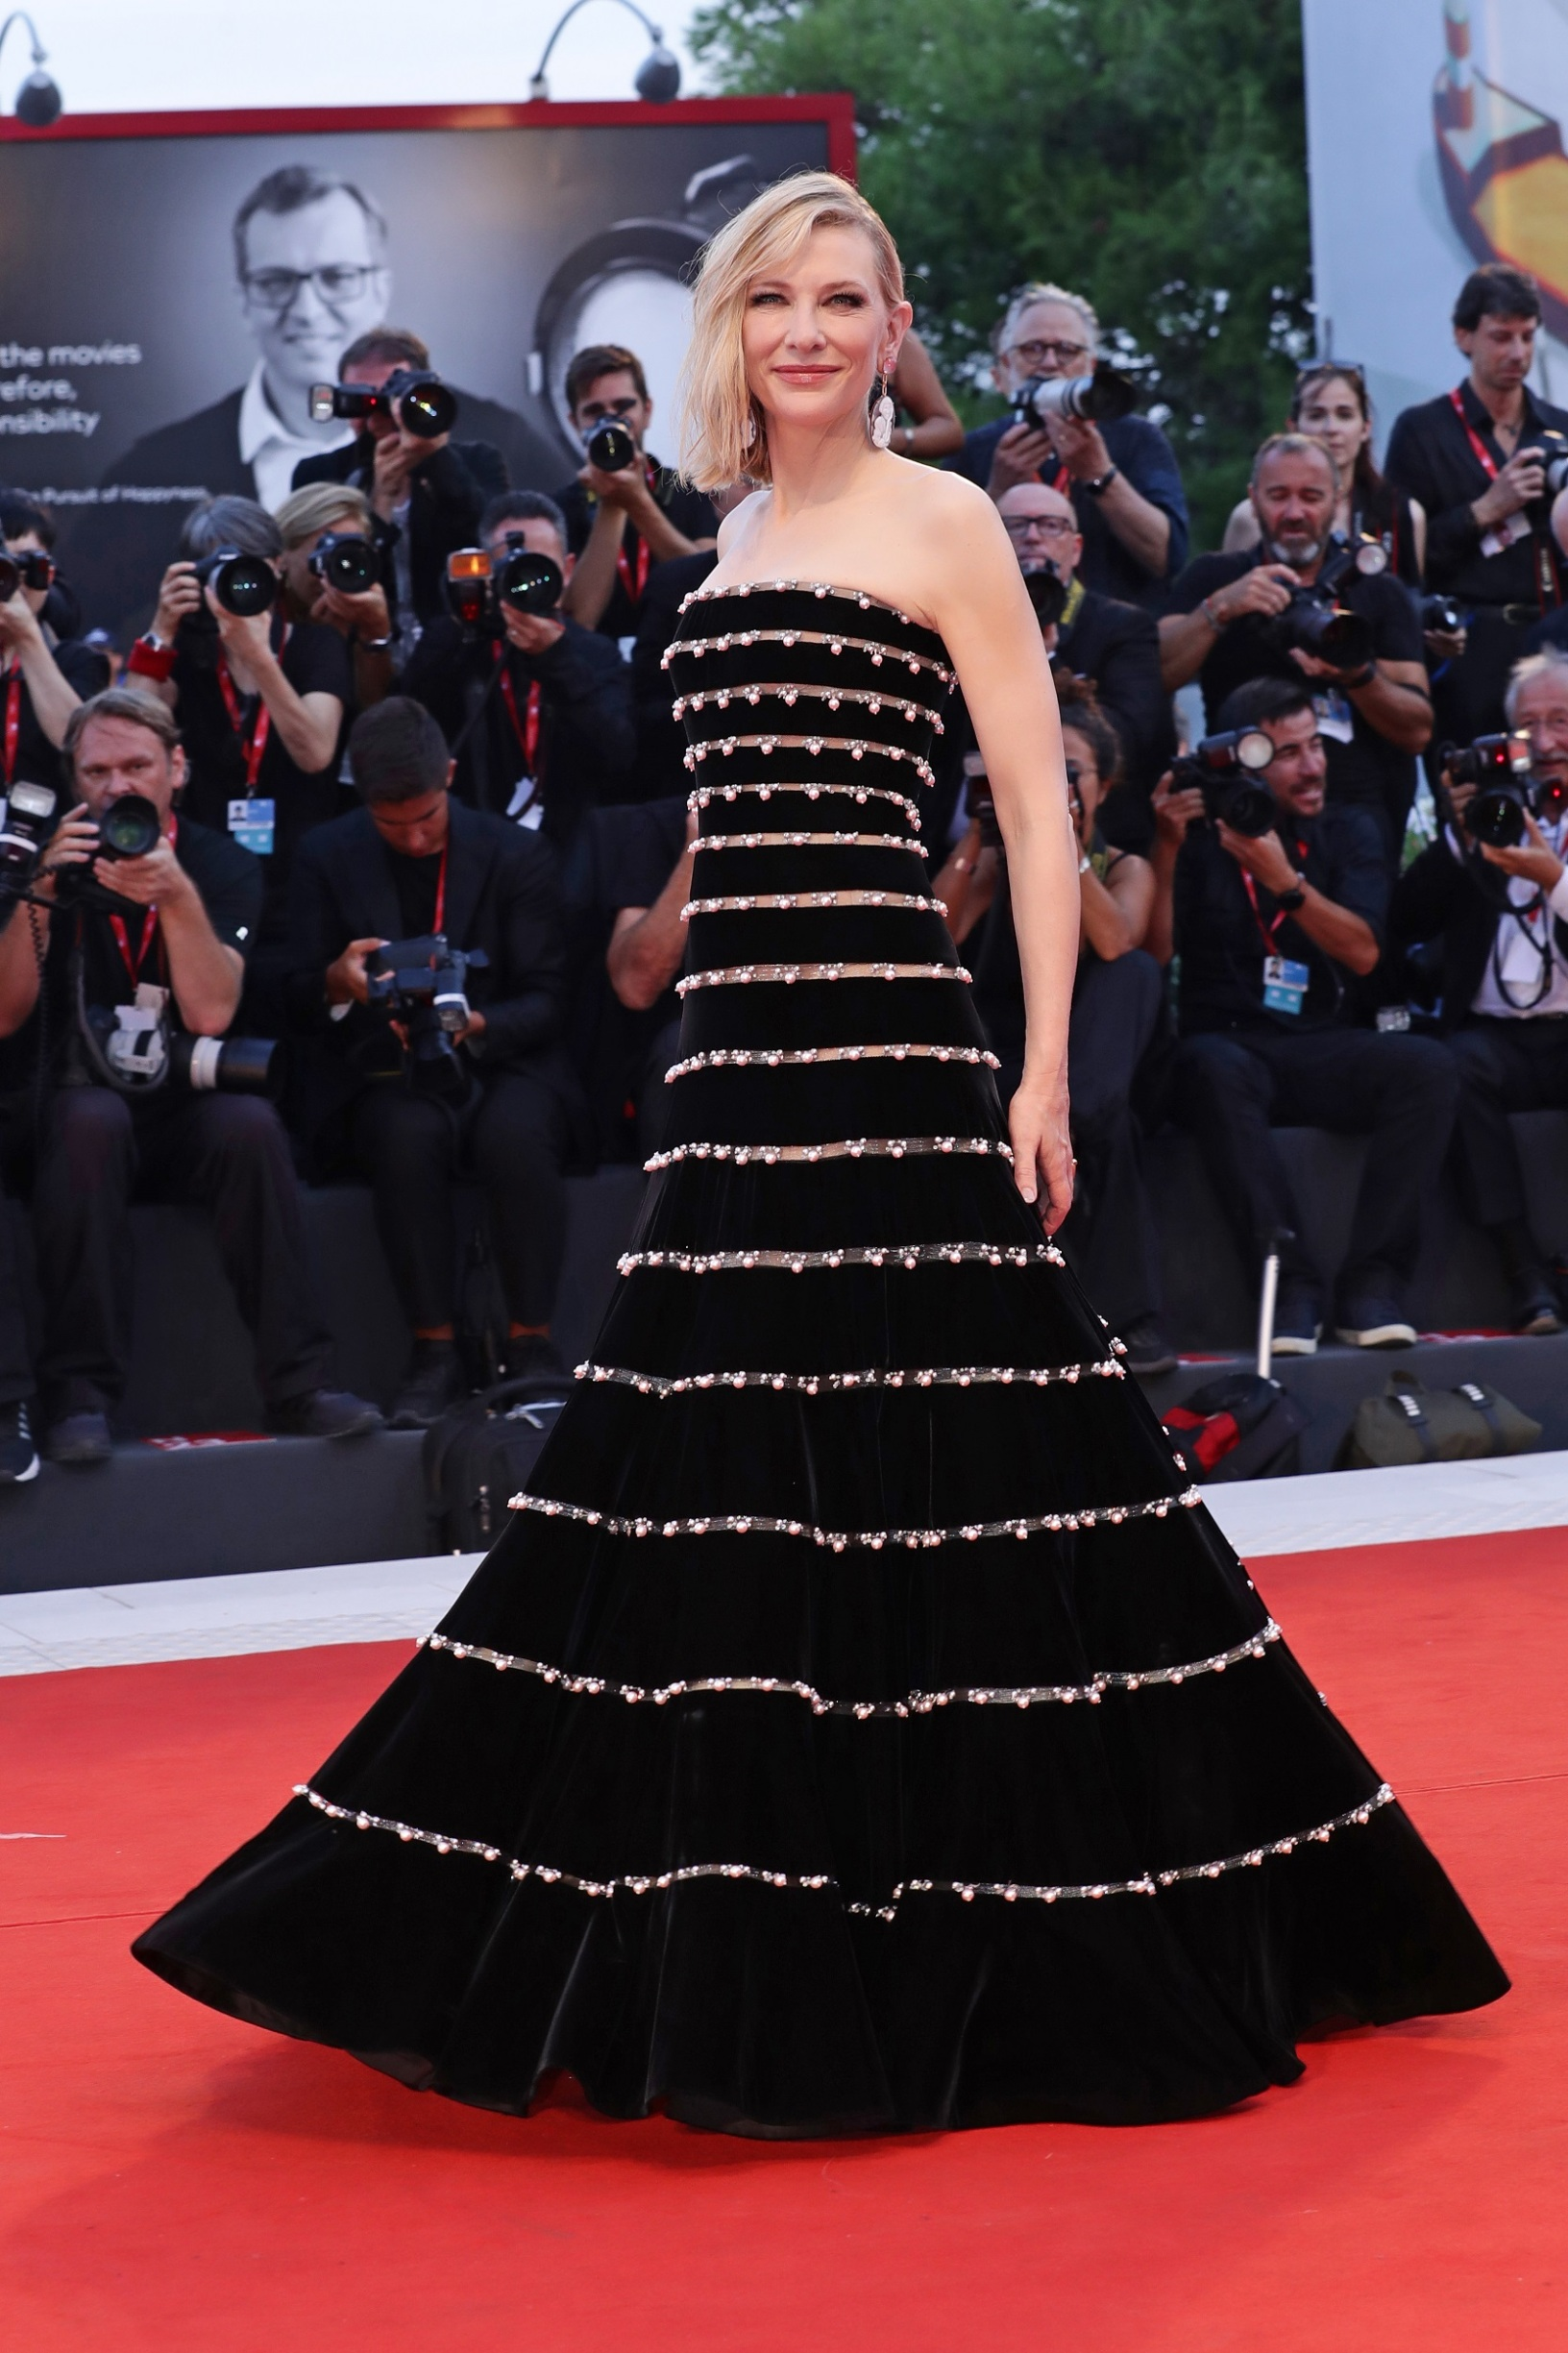 VENICE, ITALY - AUGUST 31: Cate Blanchett walks the red carpet ahead of the